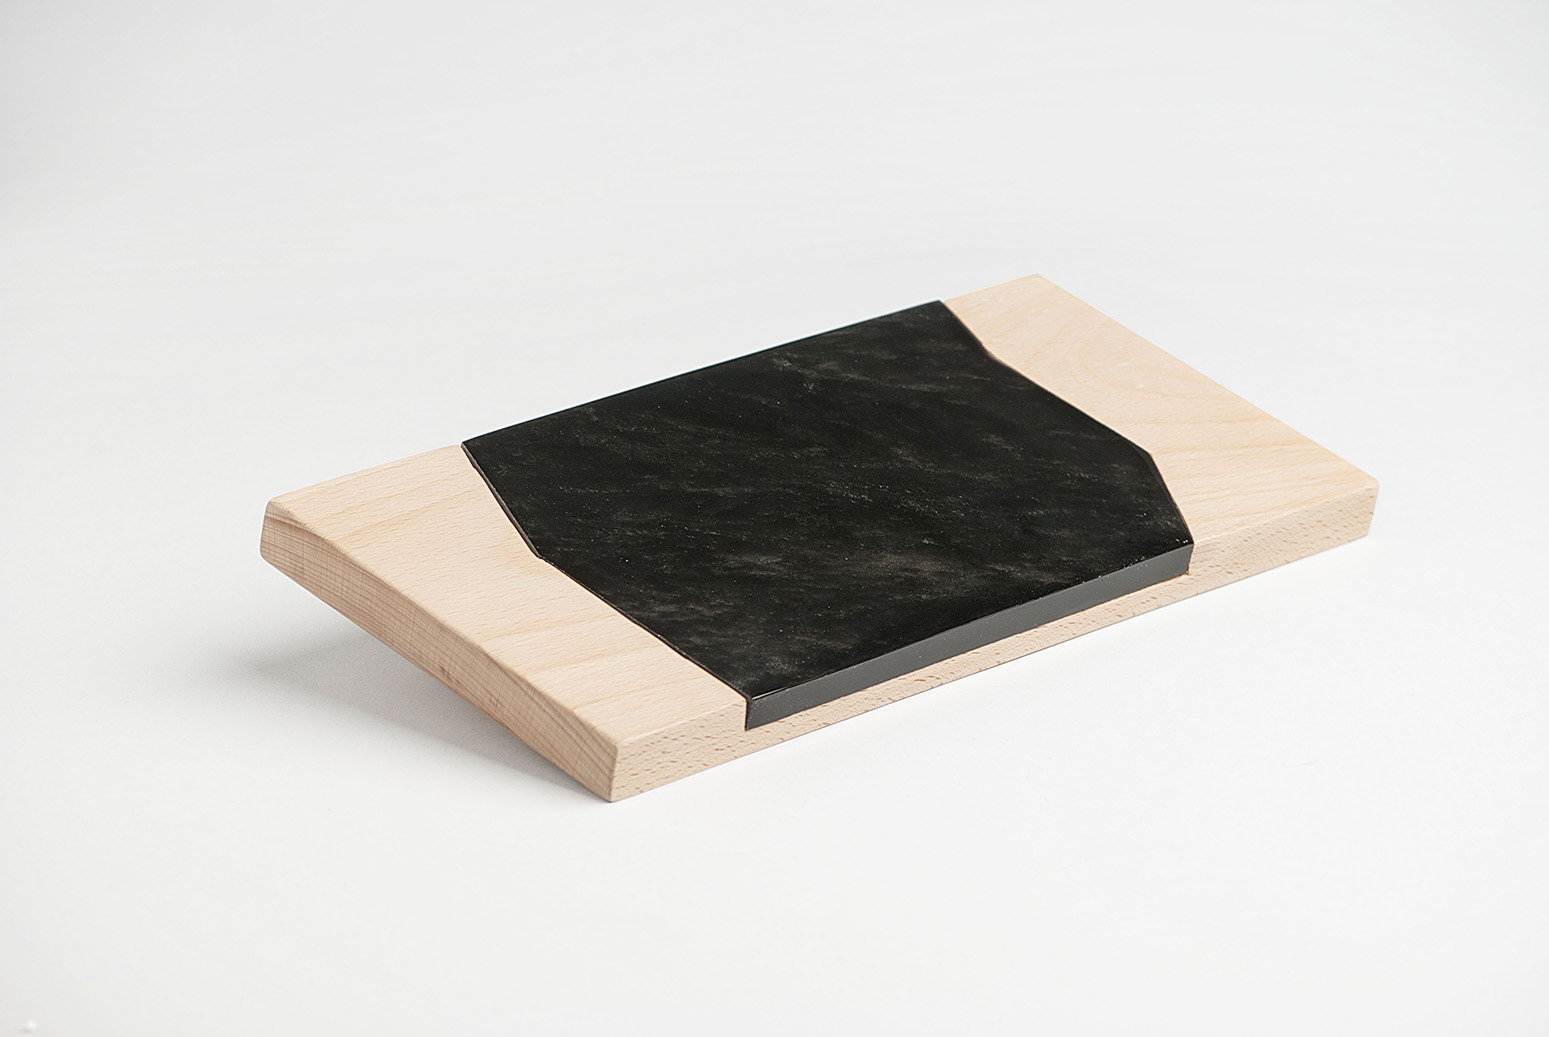 Obsidian and wood cutting board, cooperation with Hidalgo artisans